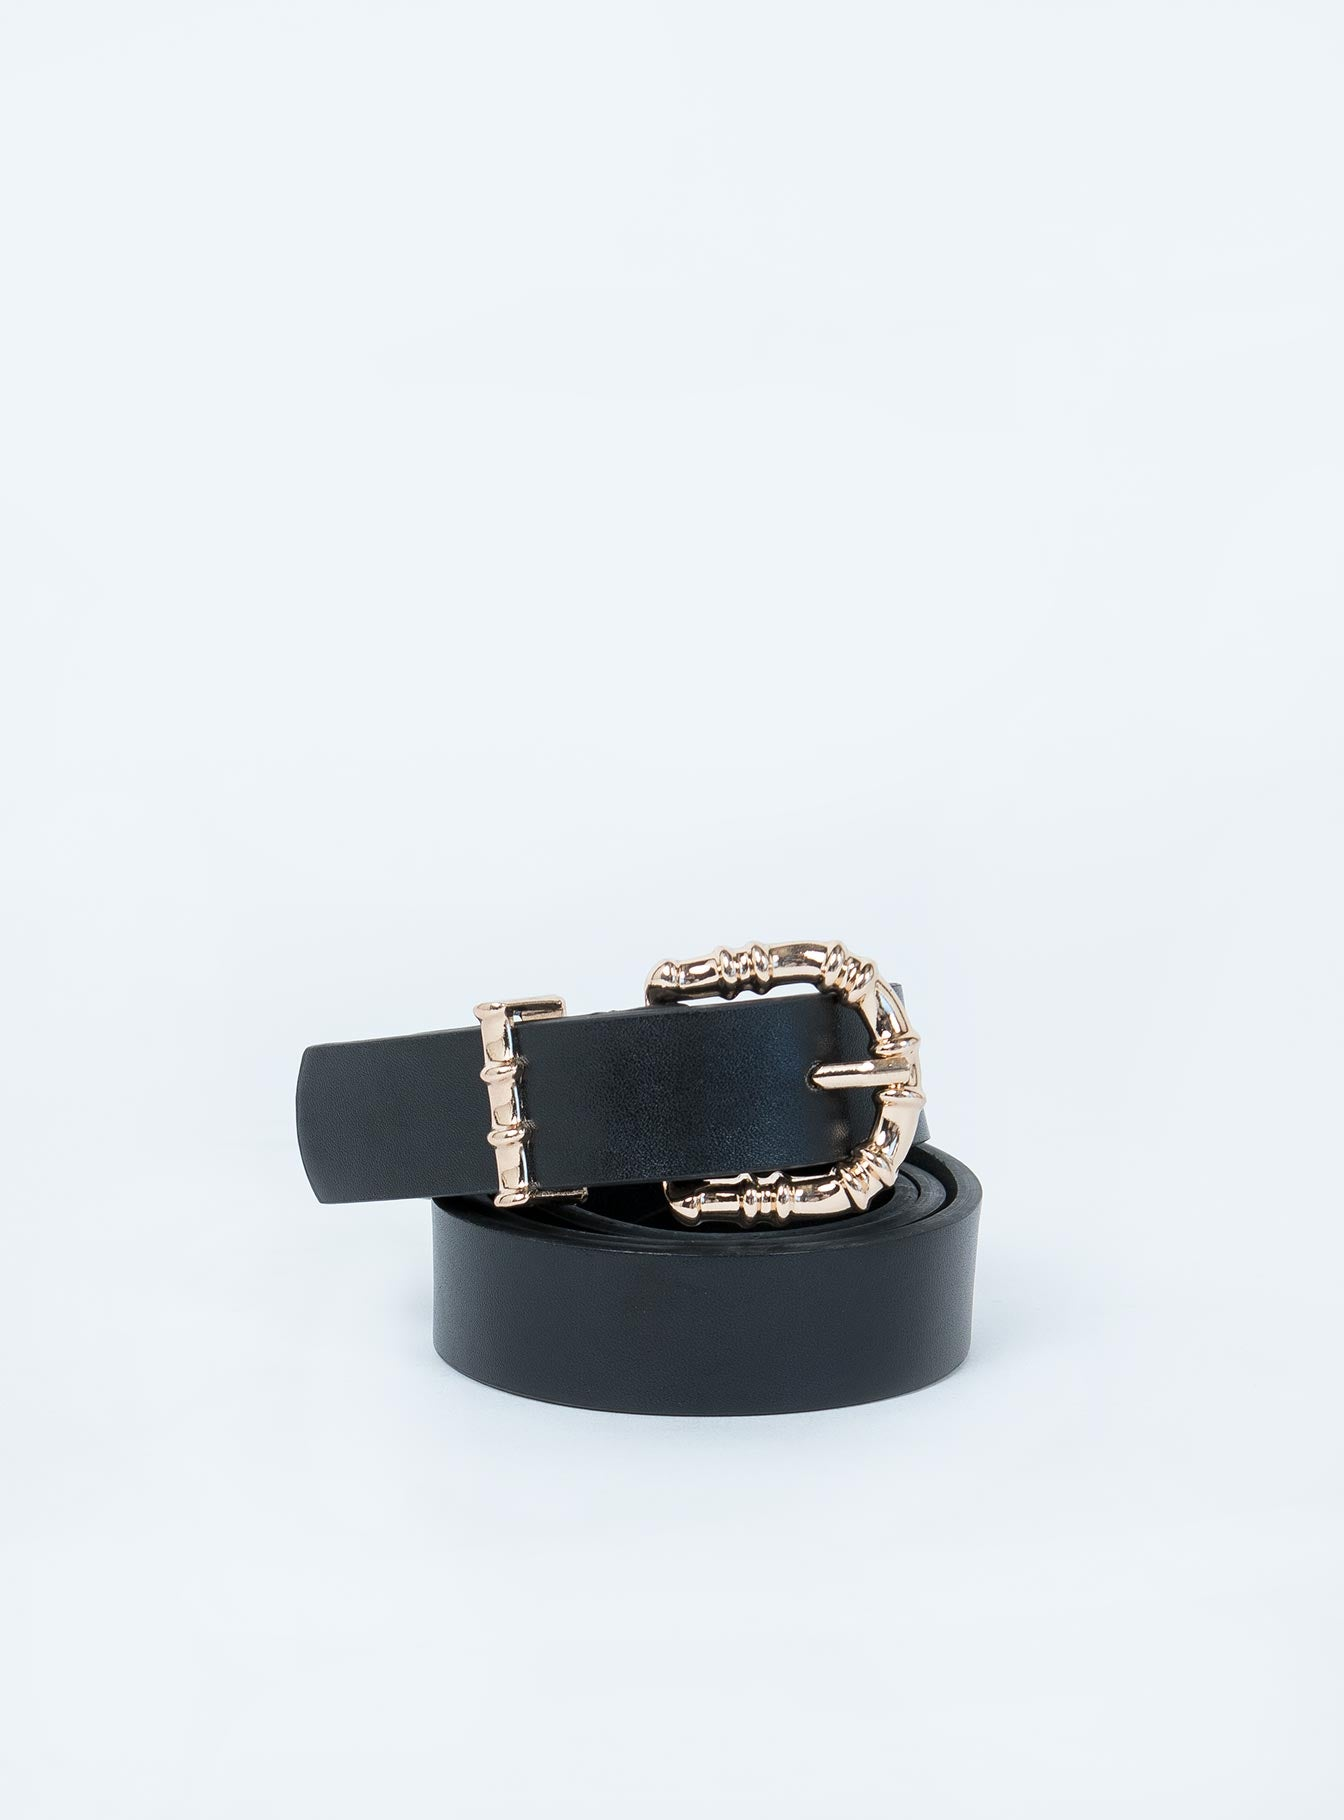 The Dante Belt Black Bronze